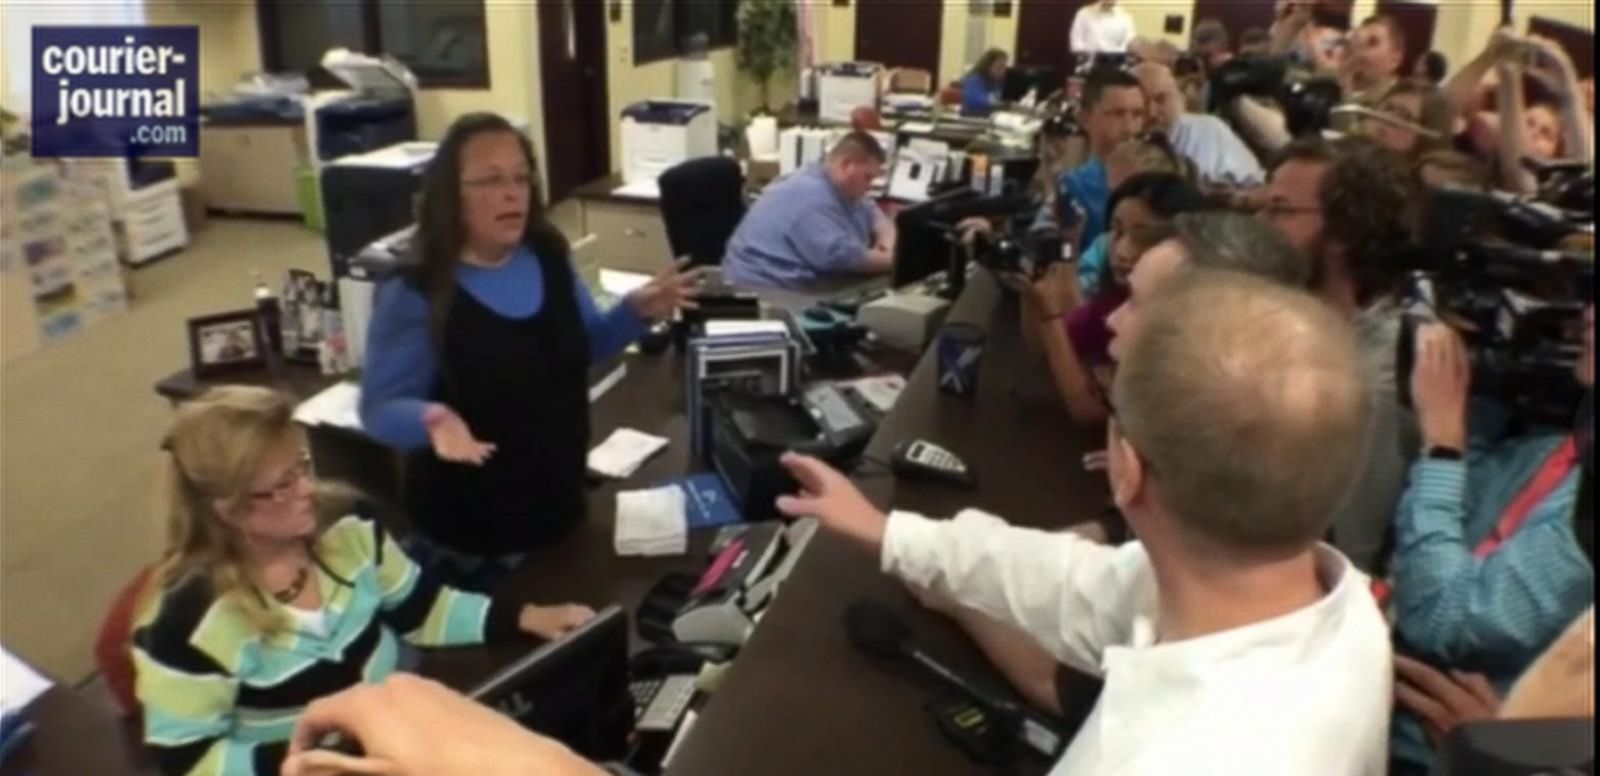 VIDEO: A judge has already denied Rowan County Clerk Kim Davis' appeal against issuing marriage licenses to same-sex couples.